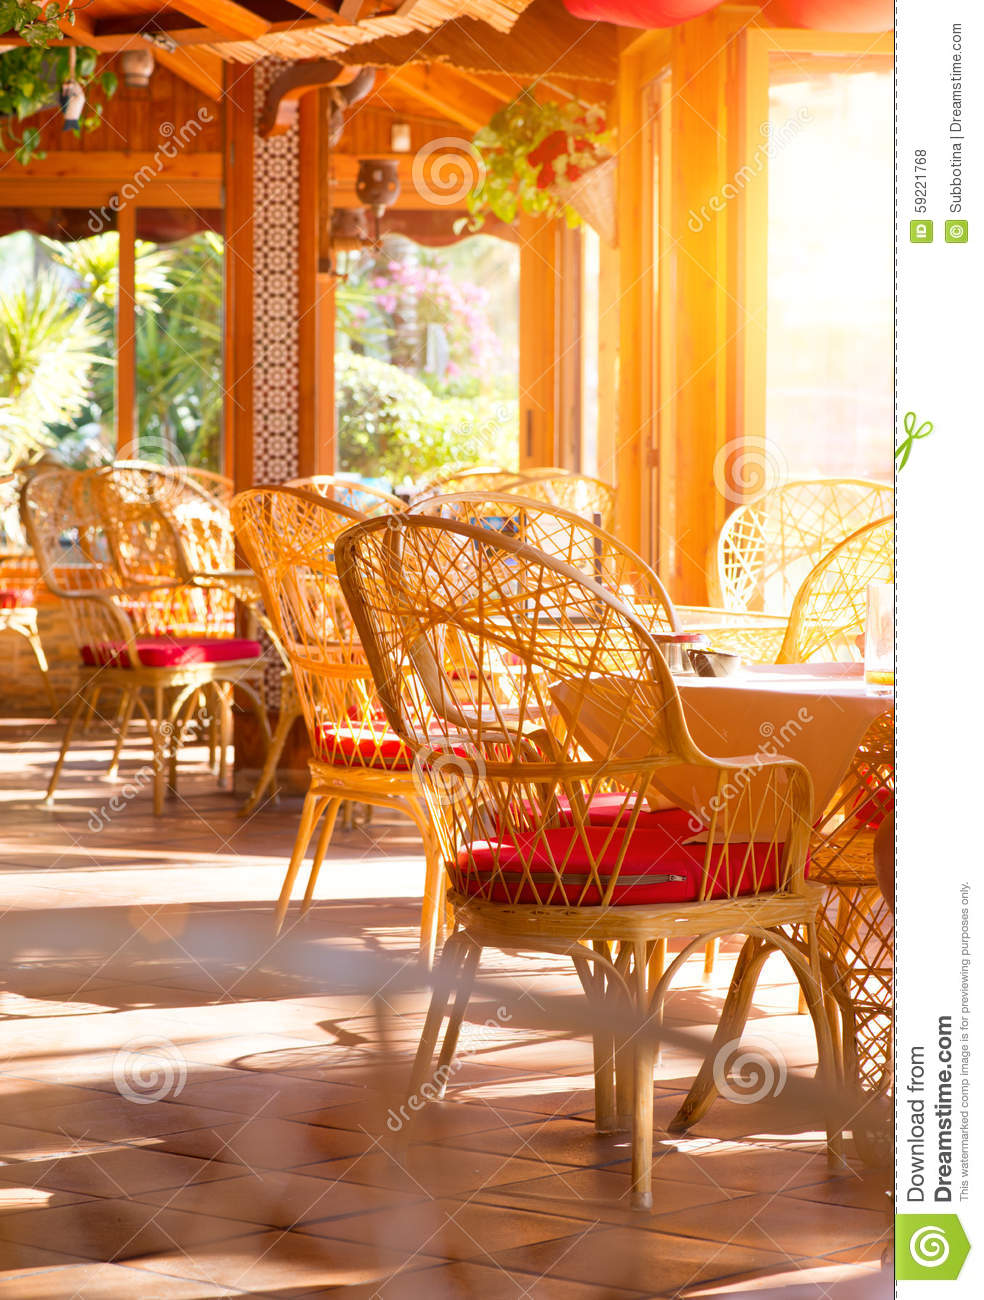 Restaurant interior. Summer coffee terrace with tables and wicker chairs